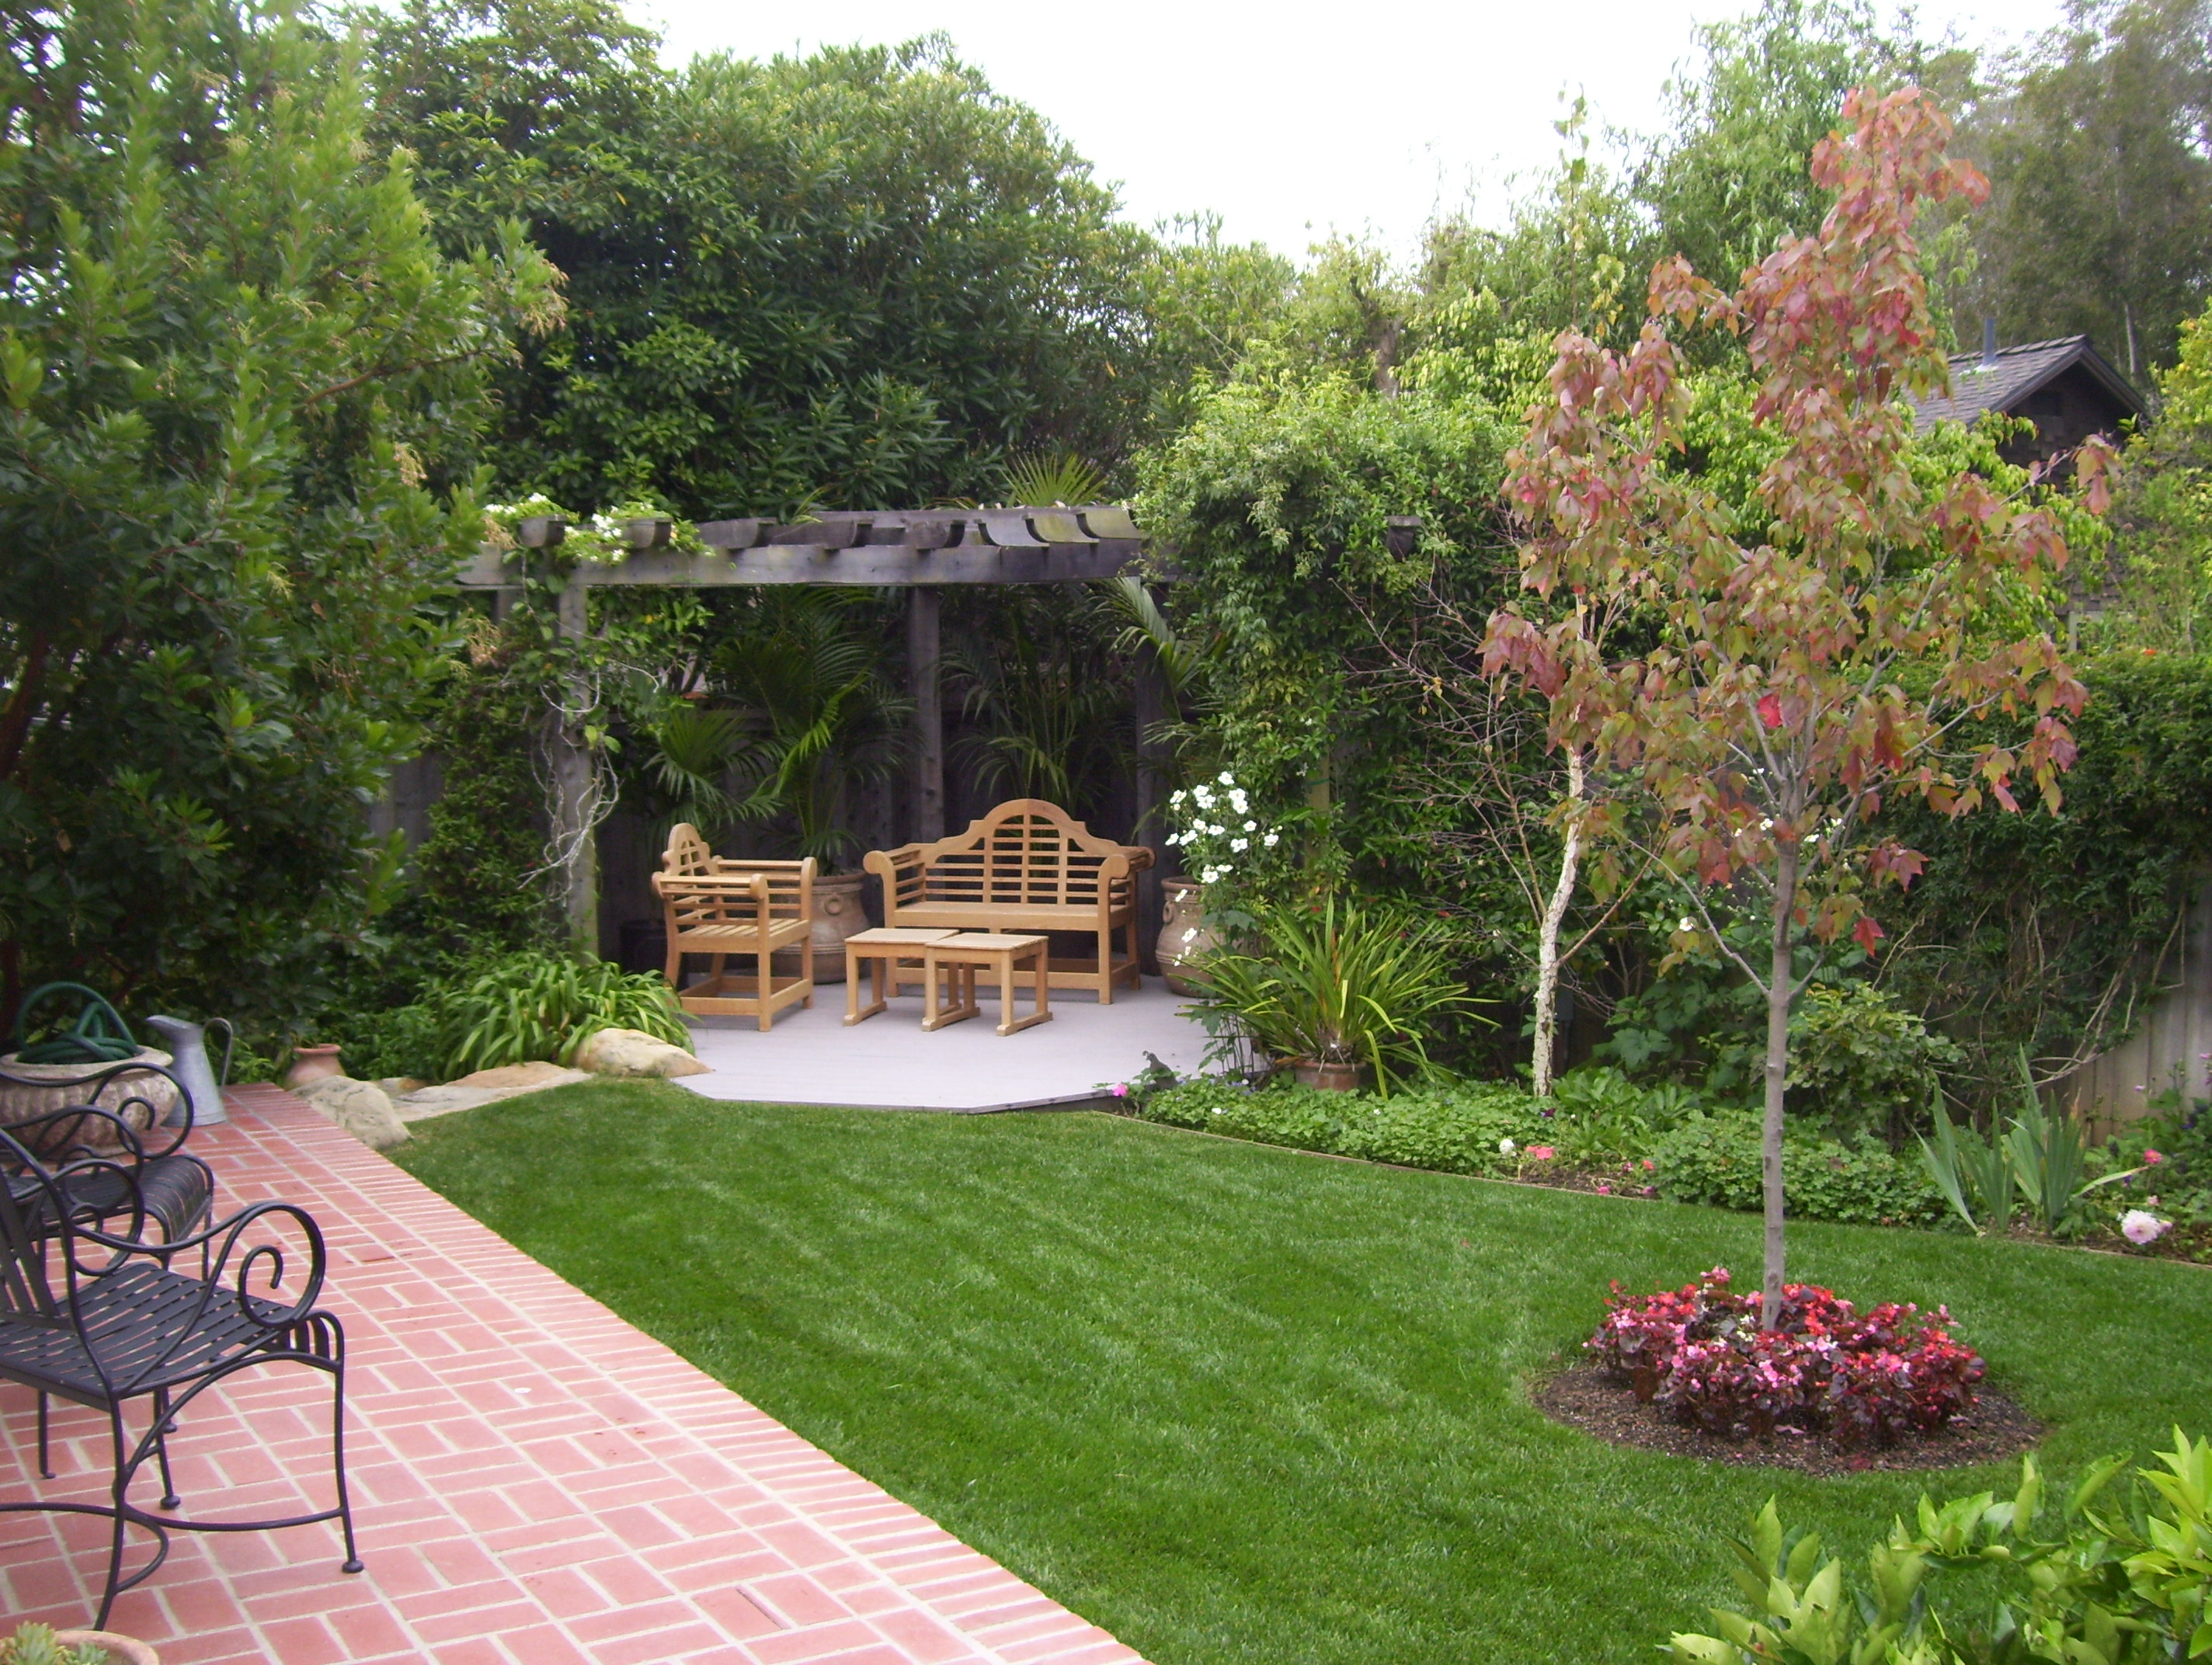 Backyard landscaping ideas santa barbara down to earth for Exterior design landscaping